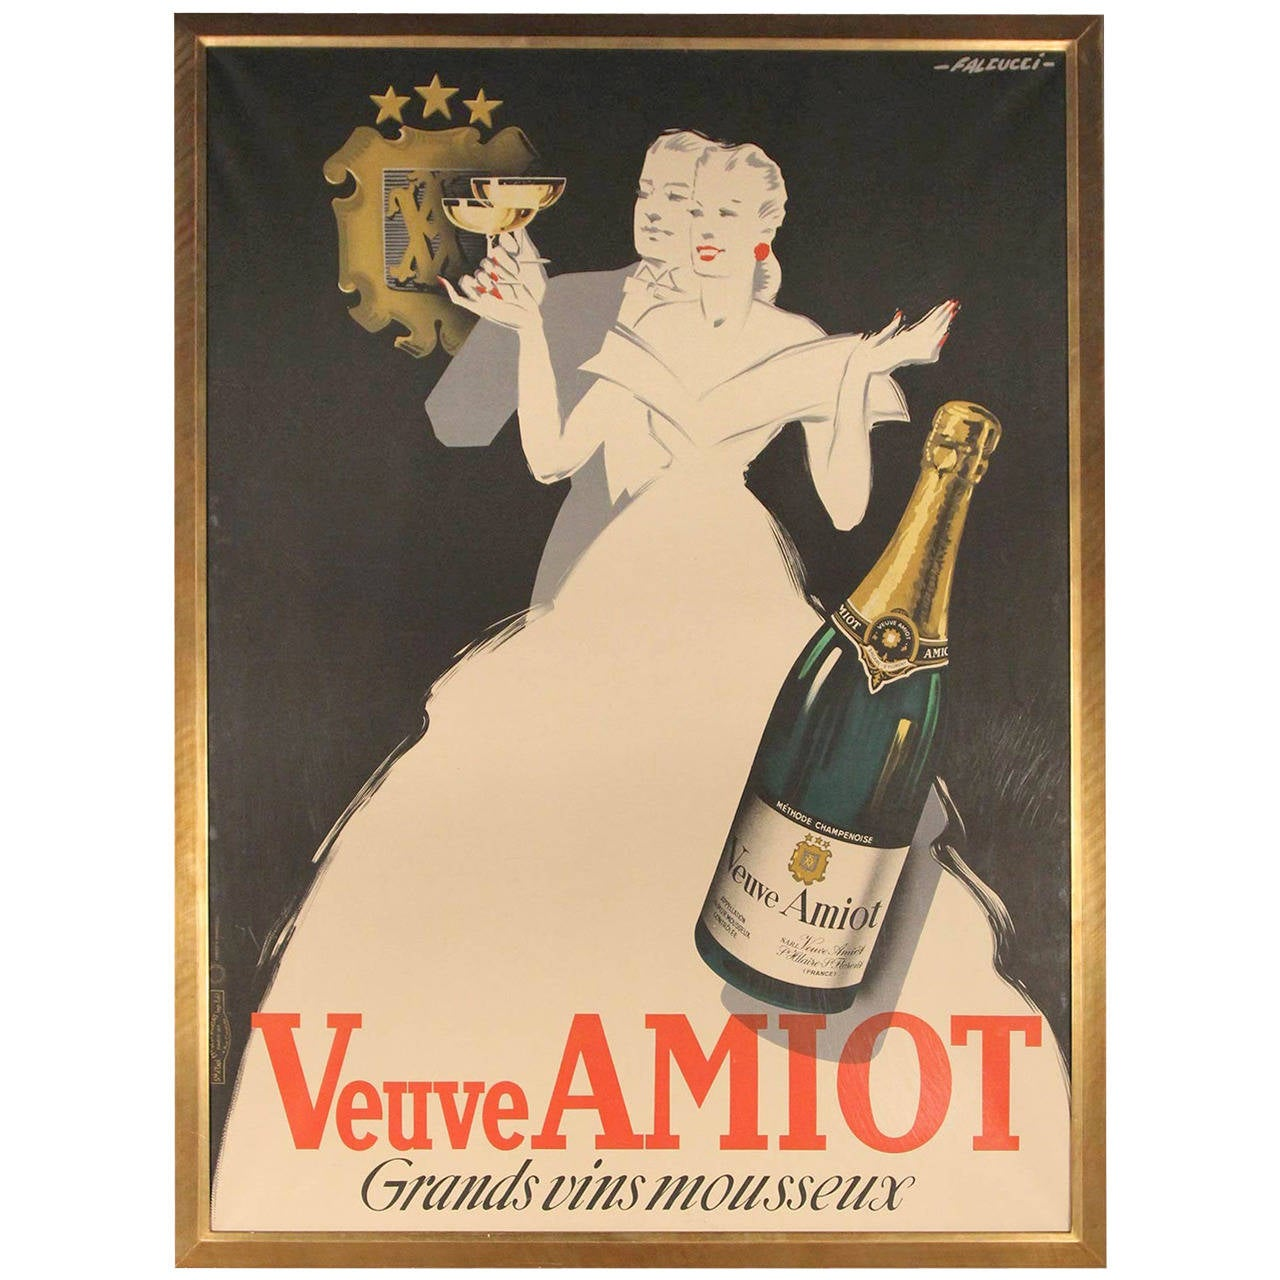 Veuve Amiot Champagne French Poster, Framed For Sale at 1stdibs